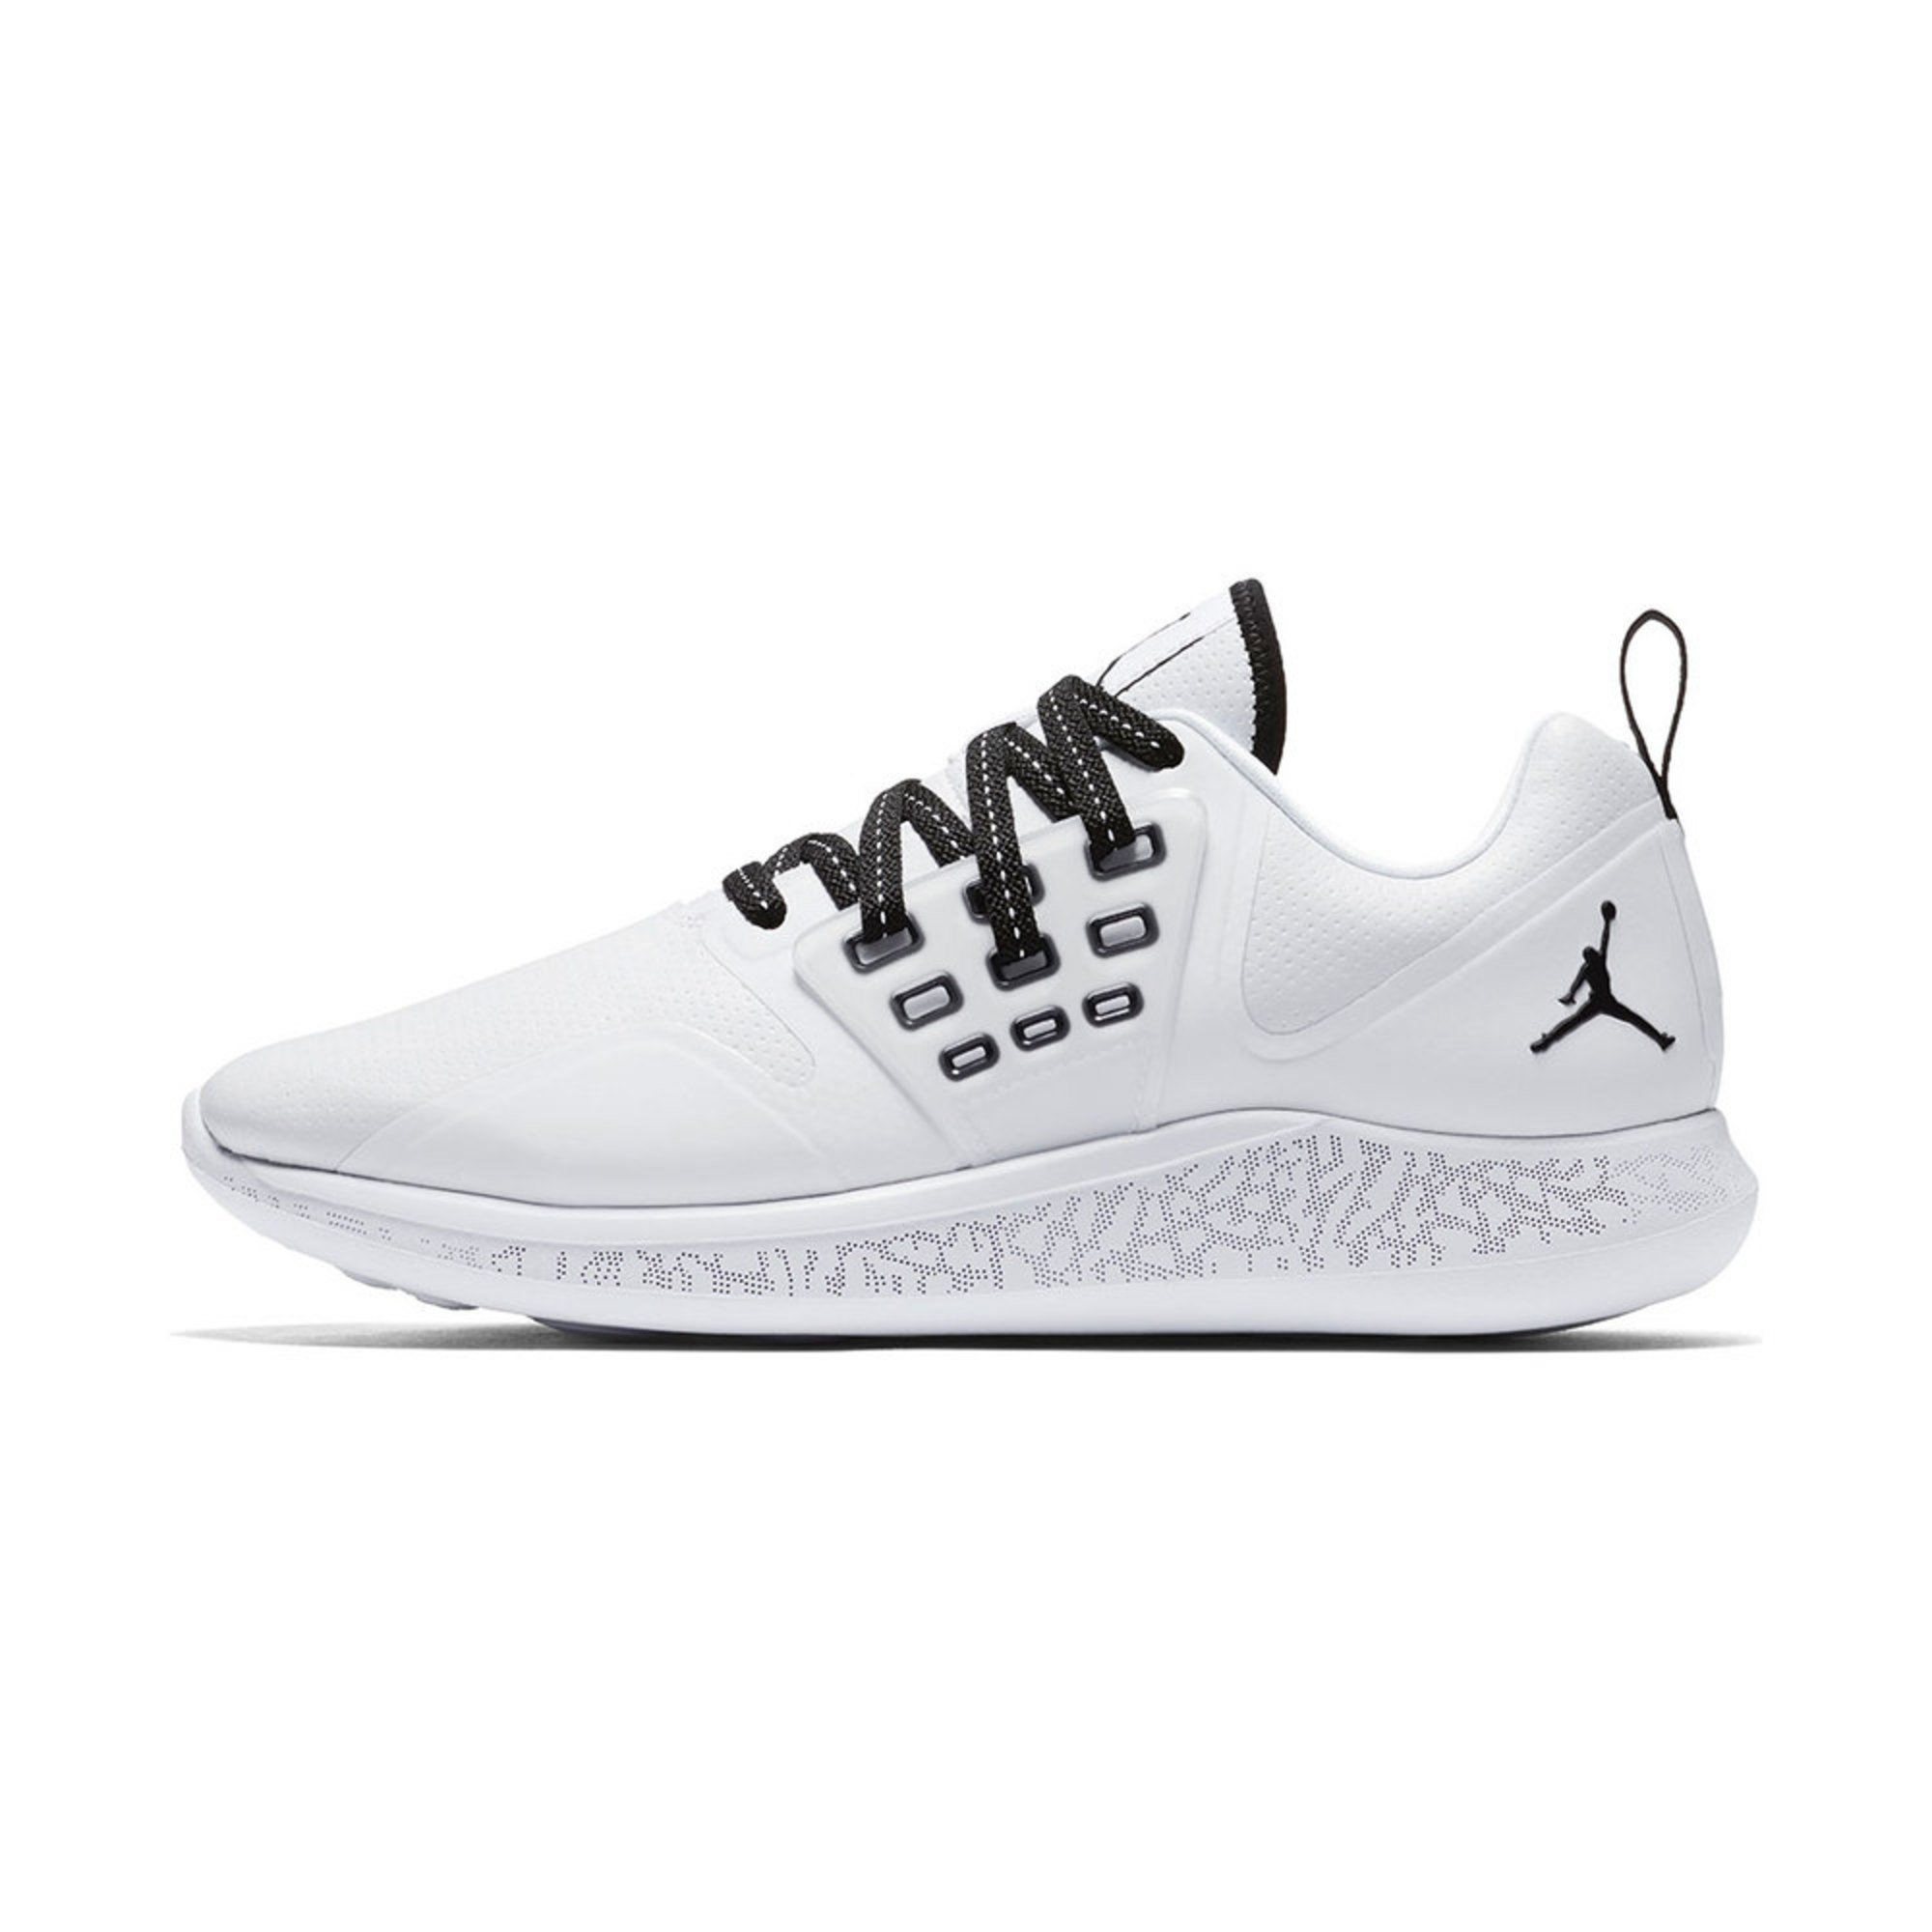 02ab3d65113c86 Jordan Men s Lunar Grind Training Shoe